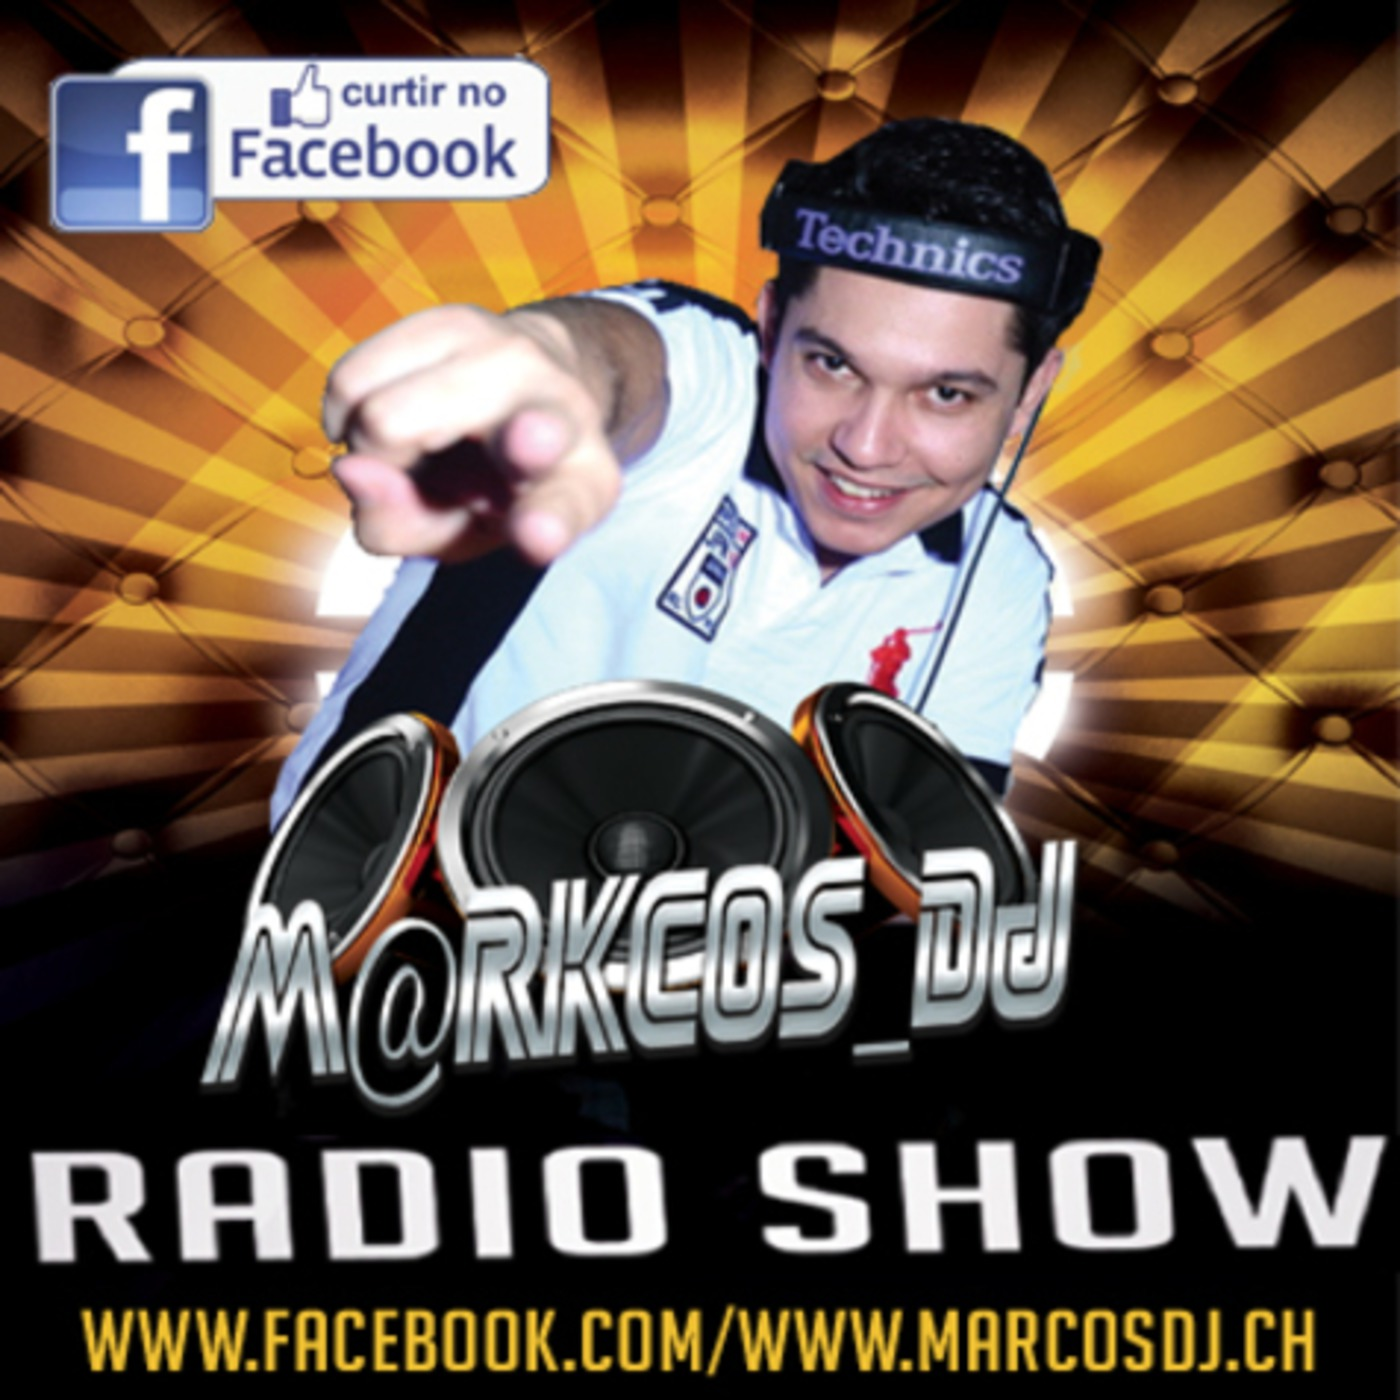 M@rKcOs_dj's Podcast